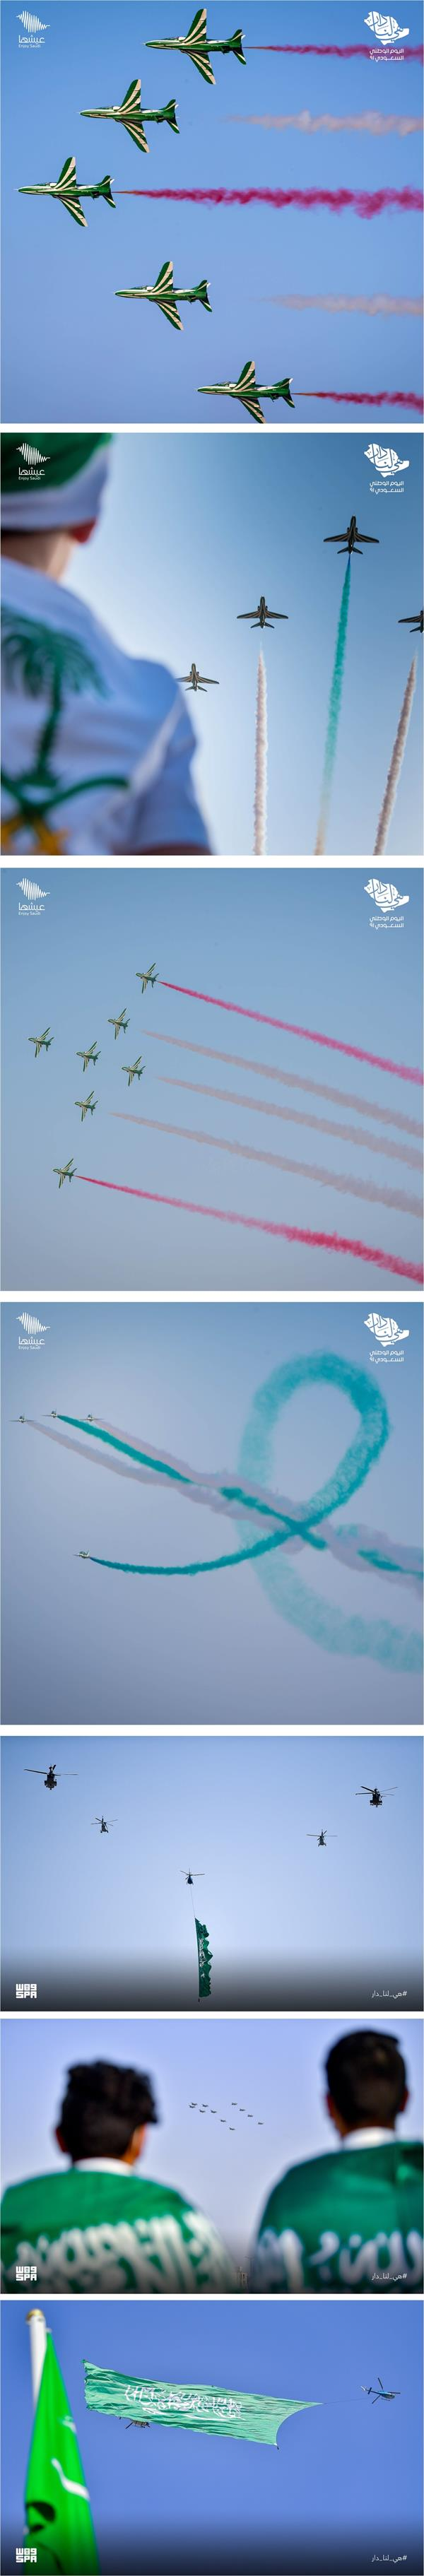 Pictures from the air shows in the sky of the Kingdom on the occasion of the National Day